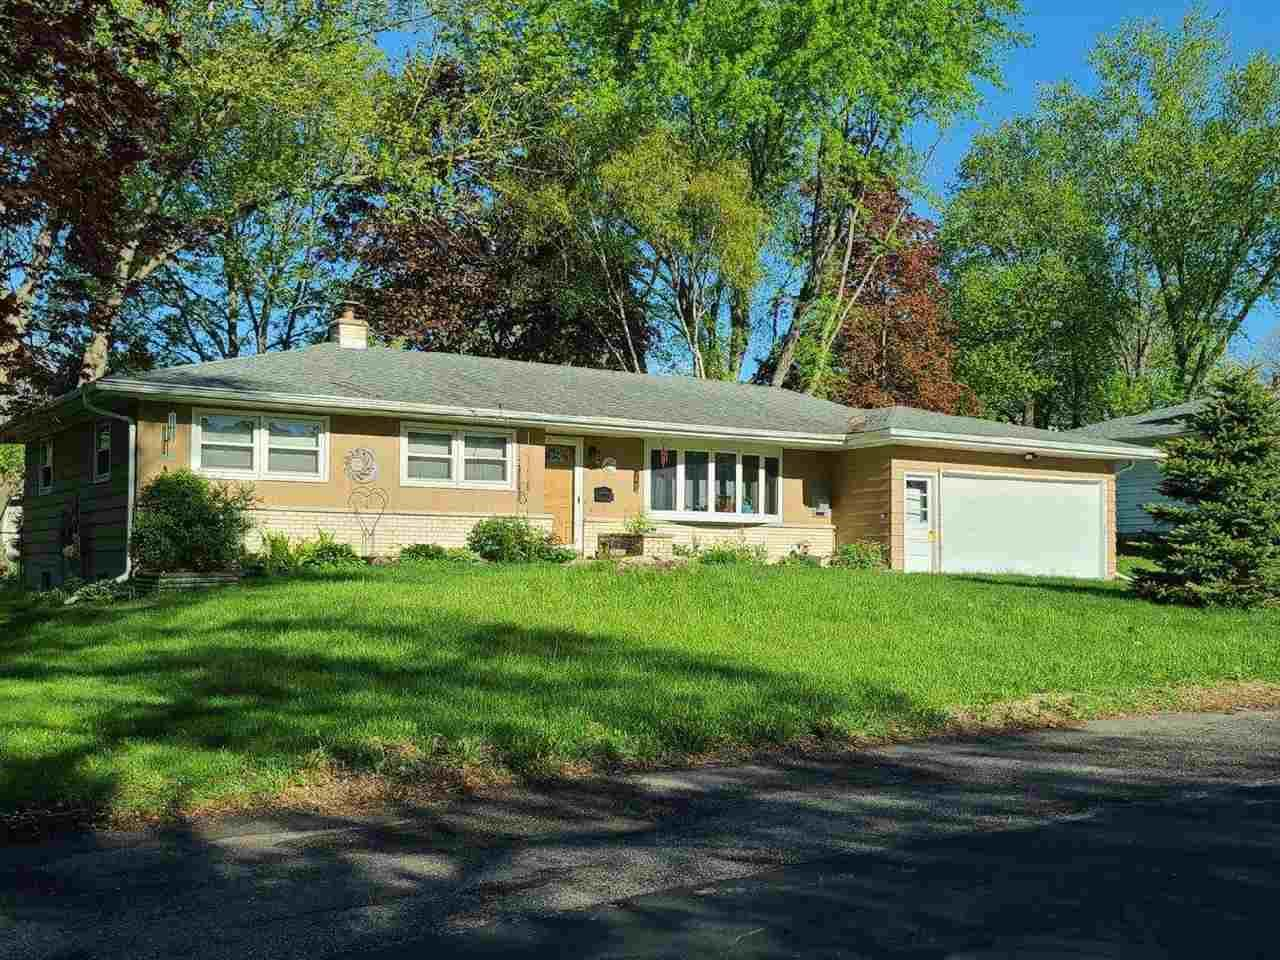 1710 Woodvale Dr, Madison, WI 53716 - #: 1908001